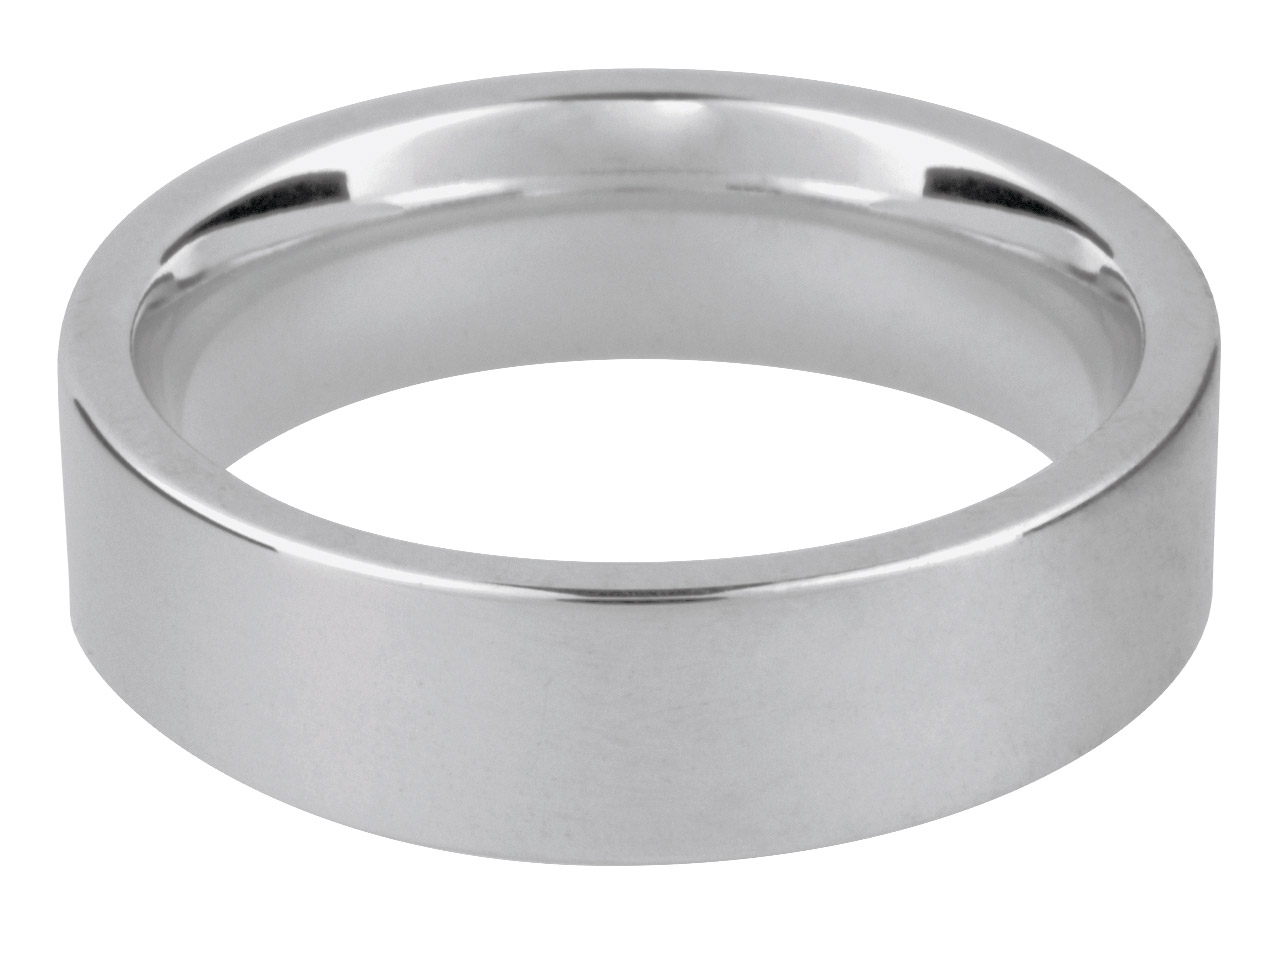 Platinum Easy Fit Wedding Ring     2.0mm J 3.4gms Medium Weight       Hallmarked Wall Thickness 1.49mm